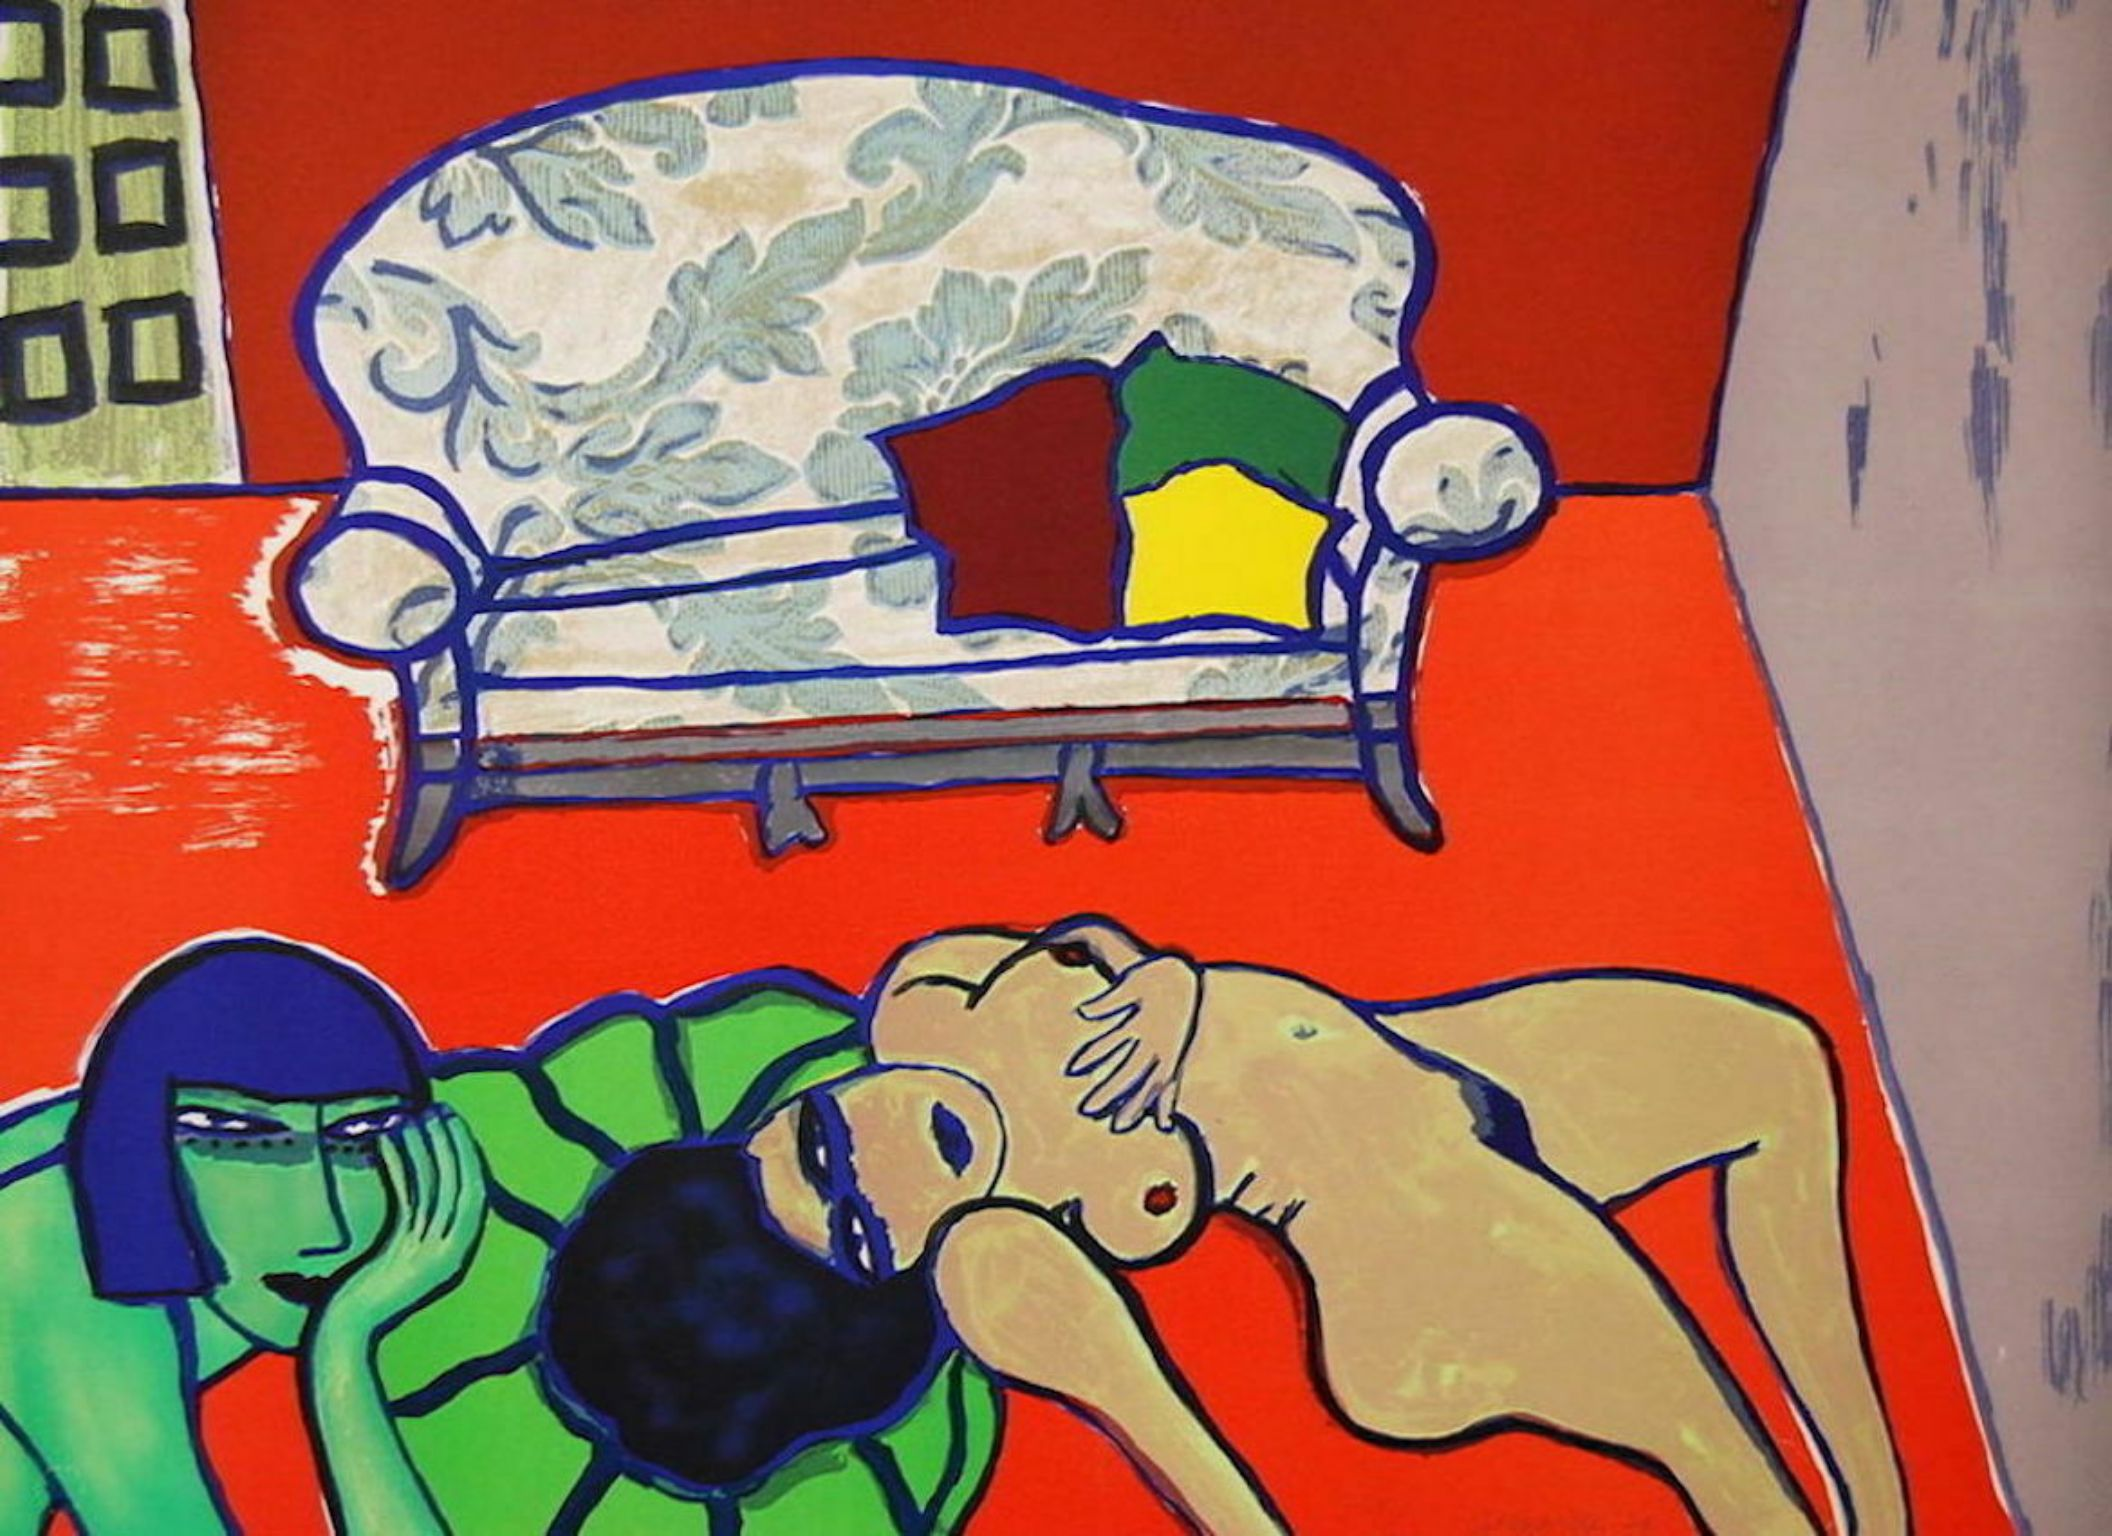 The Conversation, 1979 Limited Edition Lithograph, Guillaume Corneille